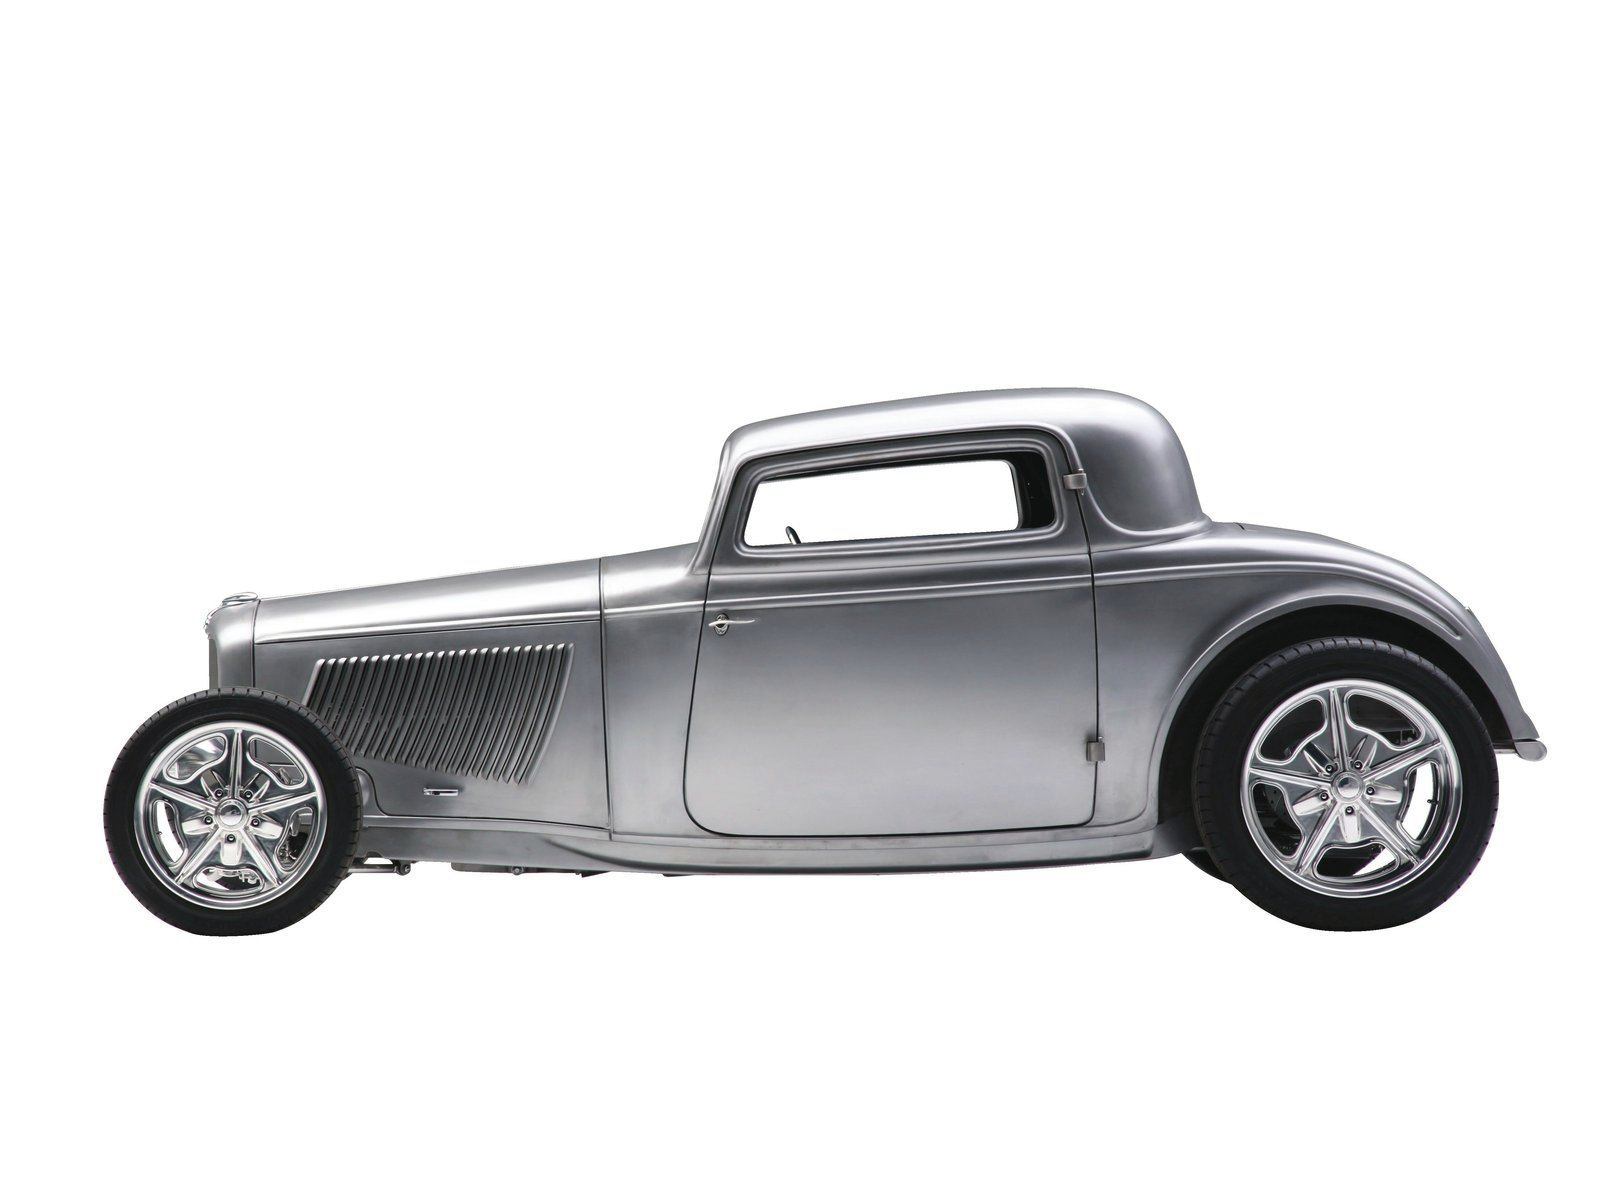 23| It's high tech (big-inch billet wheels, IFS/IRS, an LS3 under the hood), but also traditional in many ways (hood louvers, exposed hinges, and door handles). Some say it would be a shame to paint it, but gloss might just be the cherry on the sundae—we'll have to wait and see how it turns out!